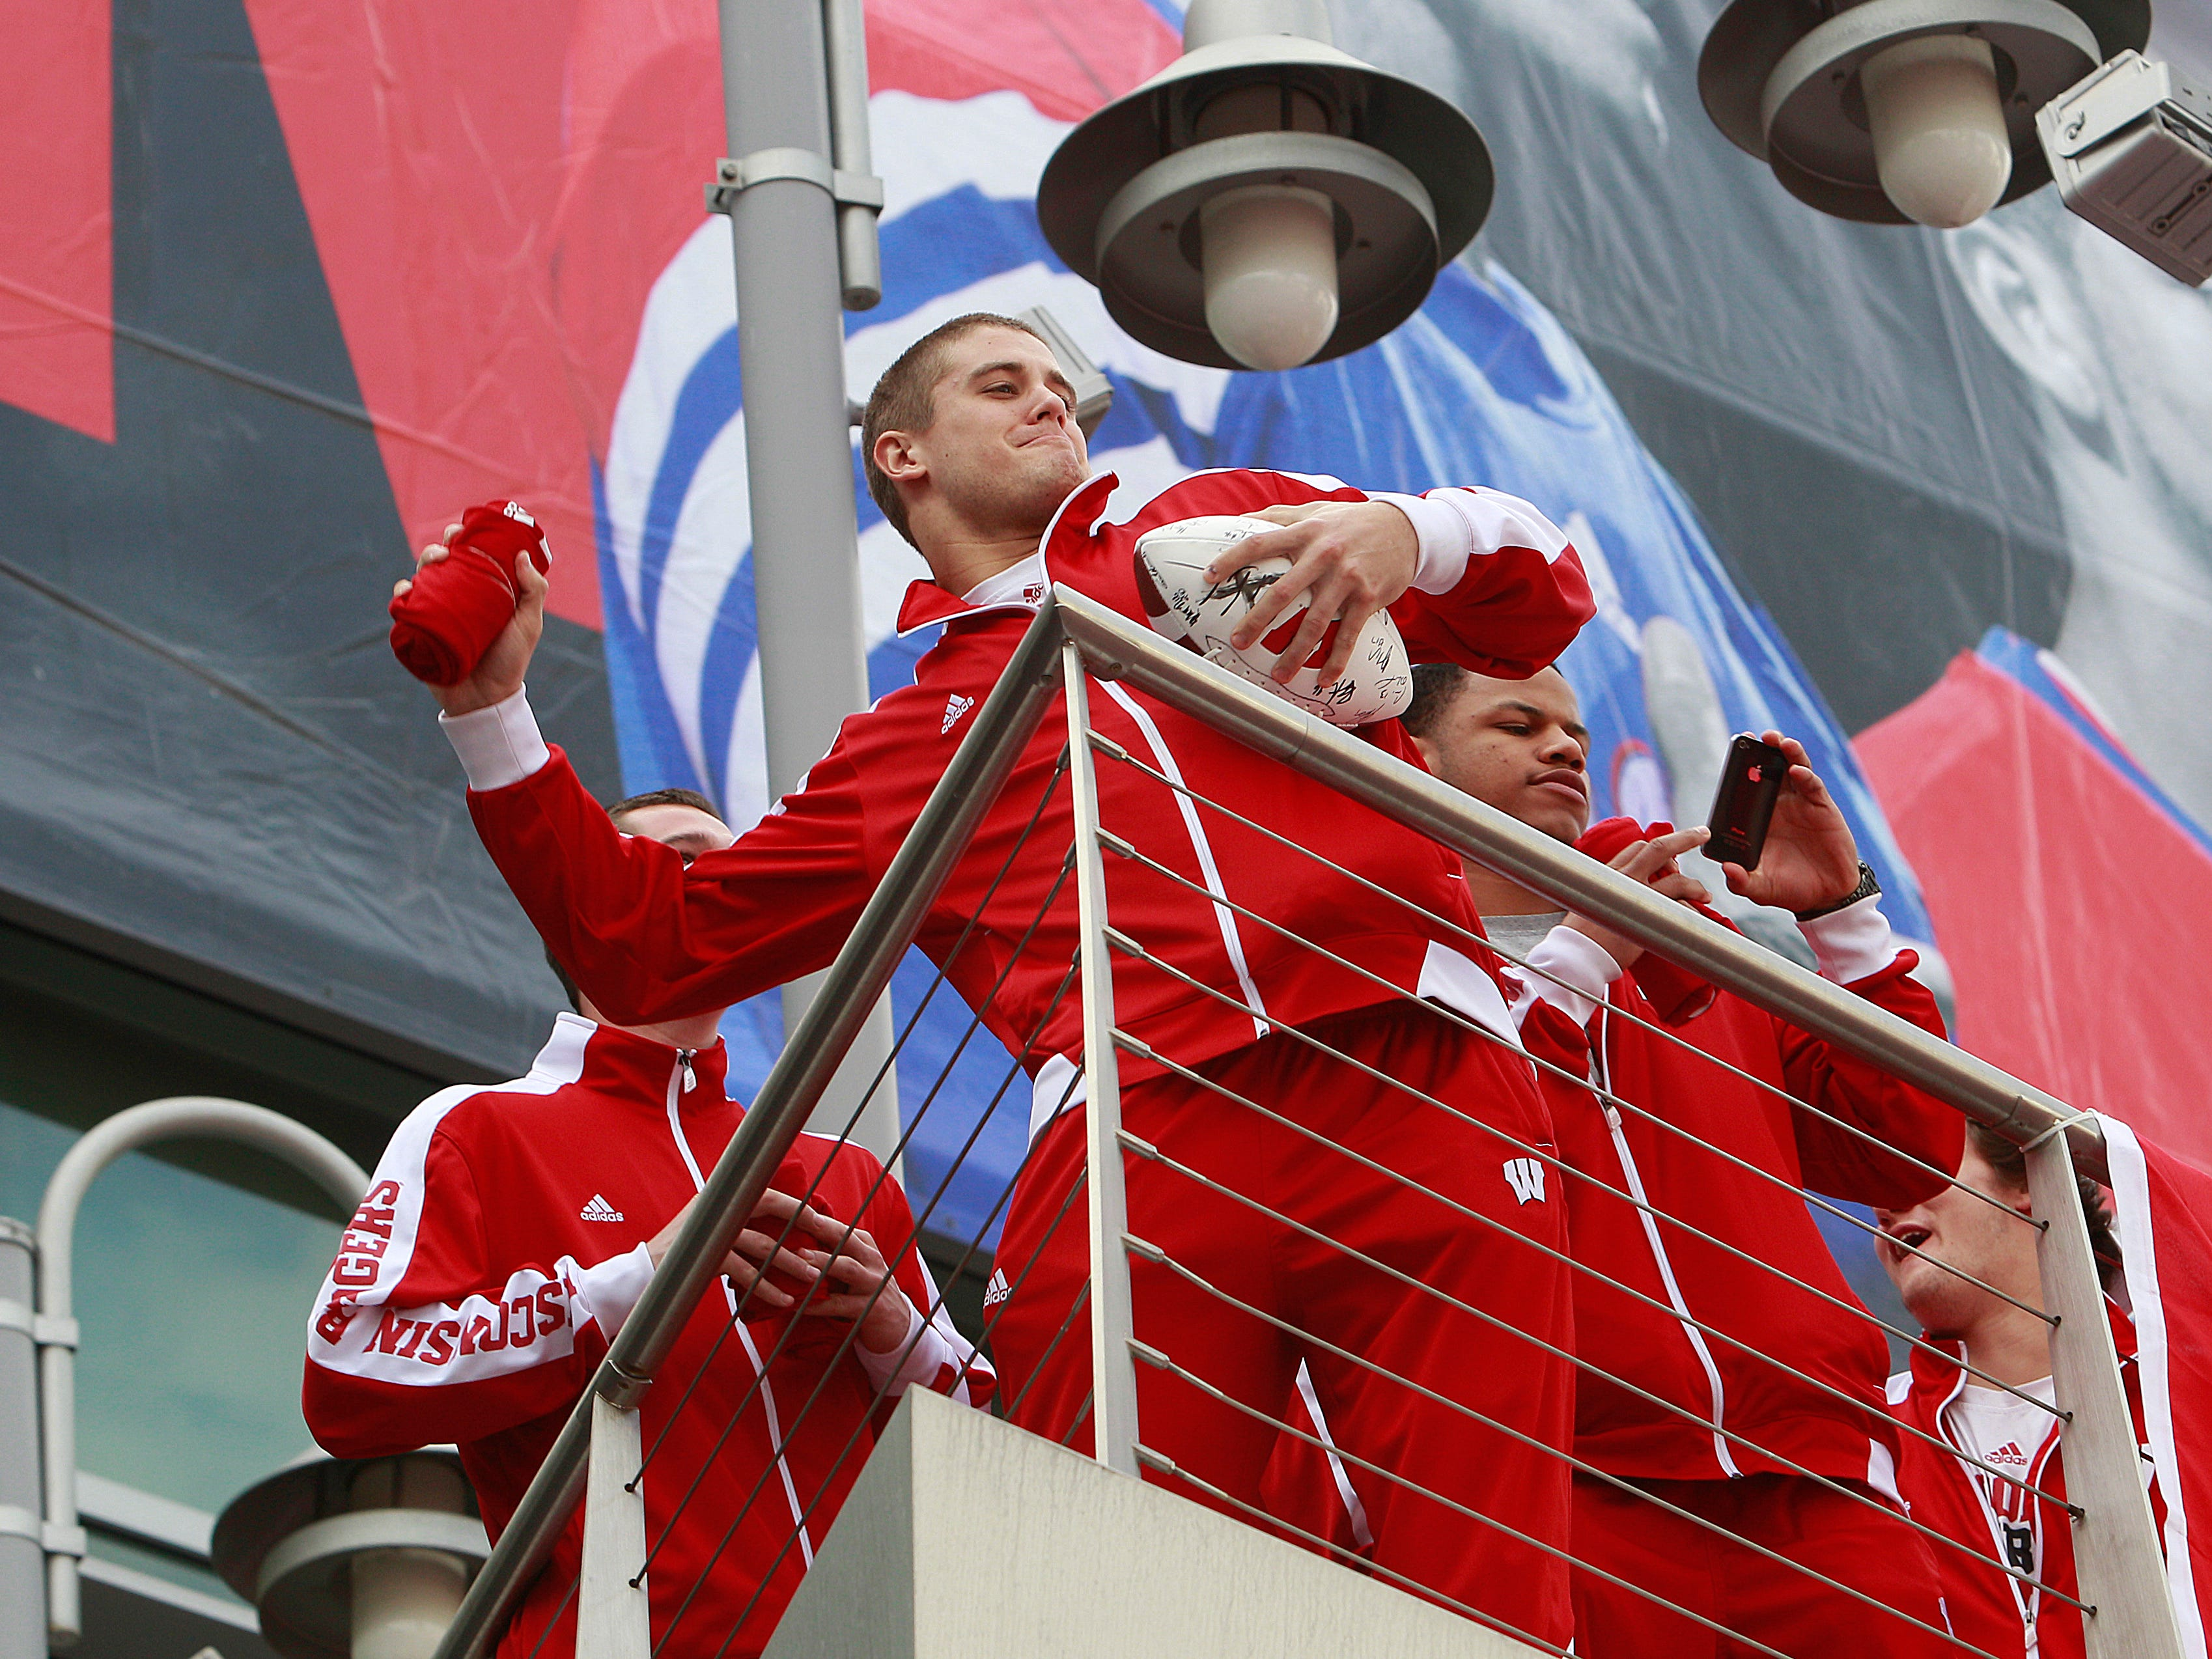 Wisconsin's Derek Watt throws a shirt into the crowd of about 2,000 Badger fans that gather at a Wisconsin pep rally at LA Live in downtown Los Angeles on Sunday, Dec. 30, 2012.